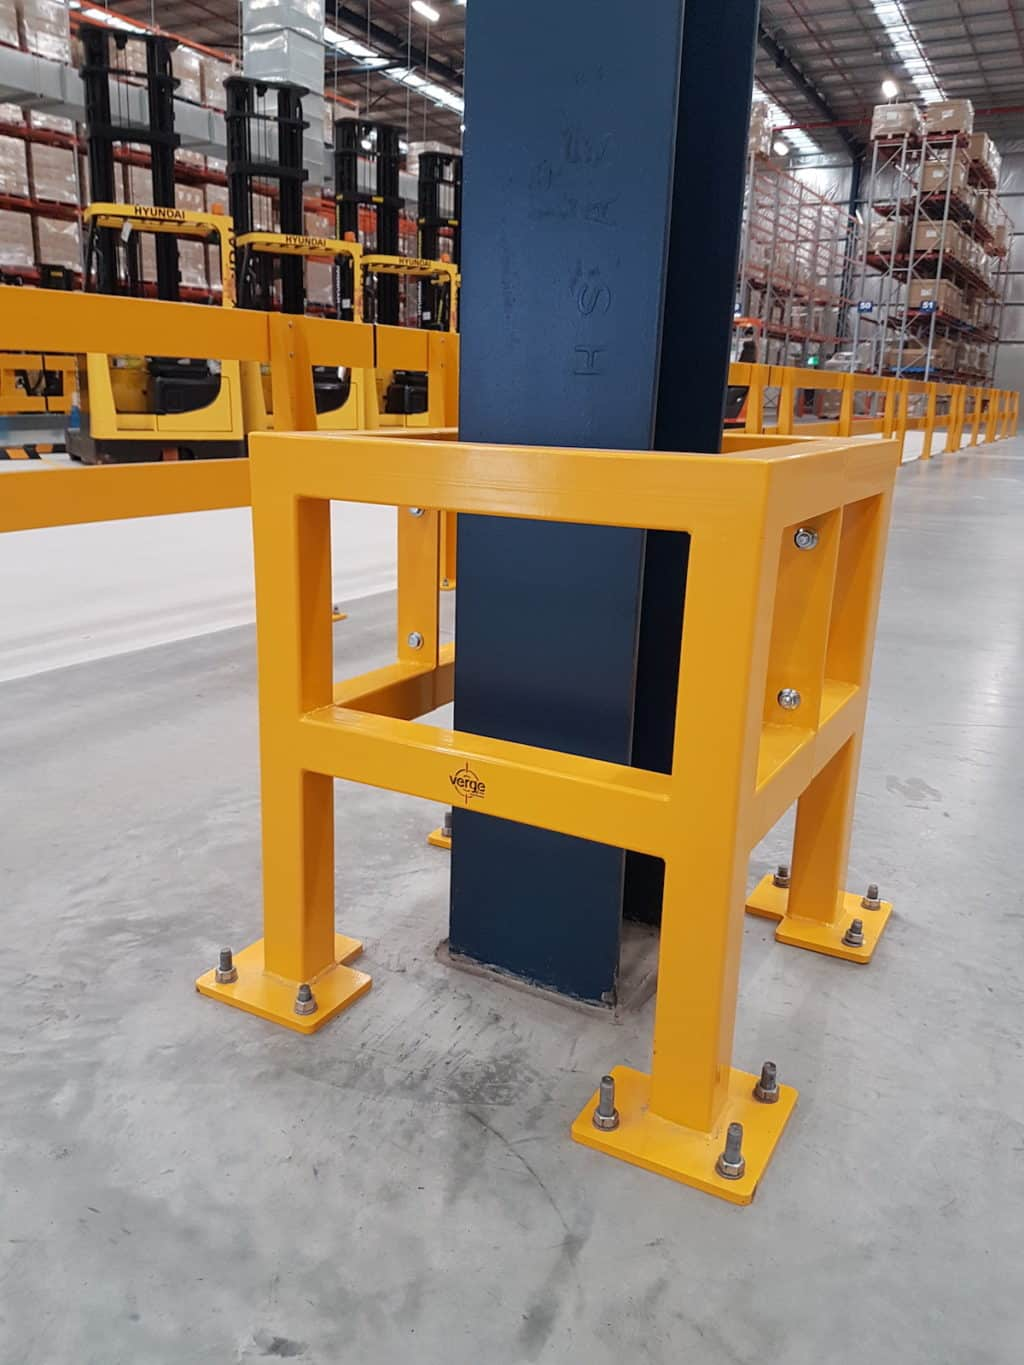 EV310 Verge safety barriers. Verge Column protection. asset protection. forklift safety MEDLINE (2)